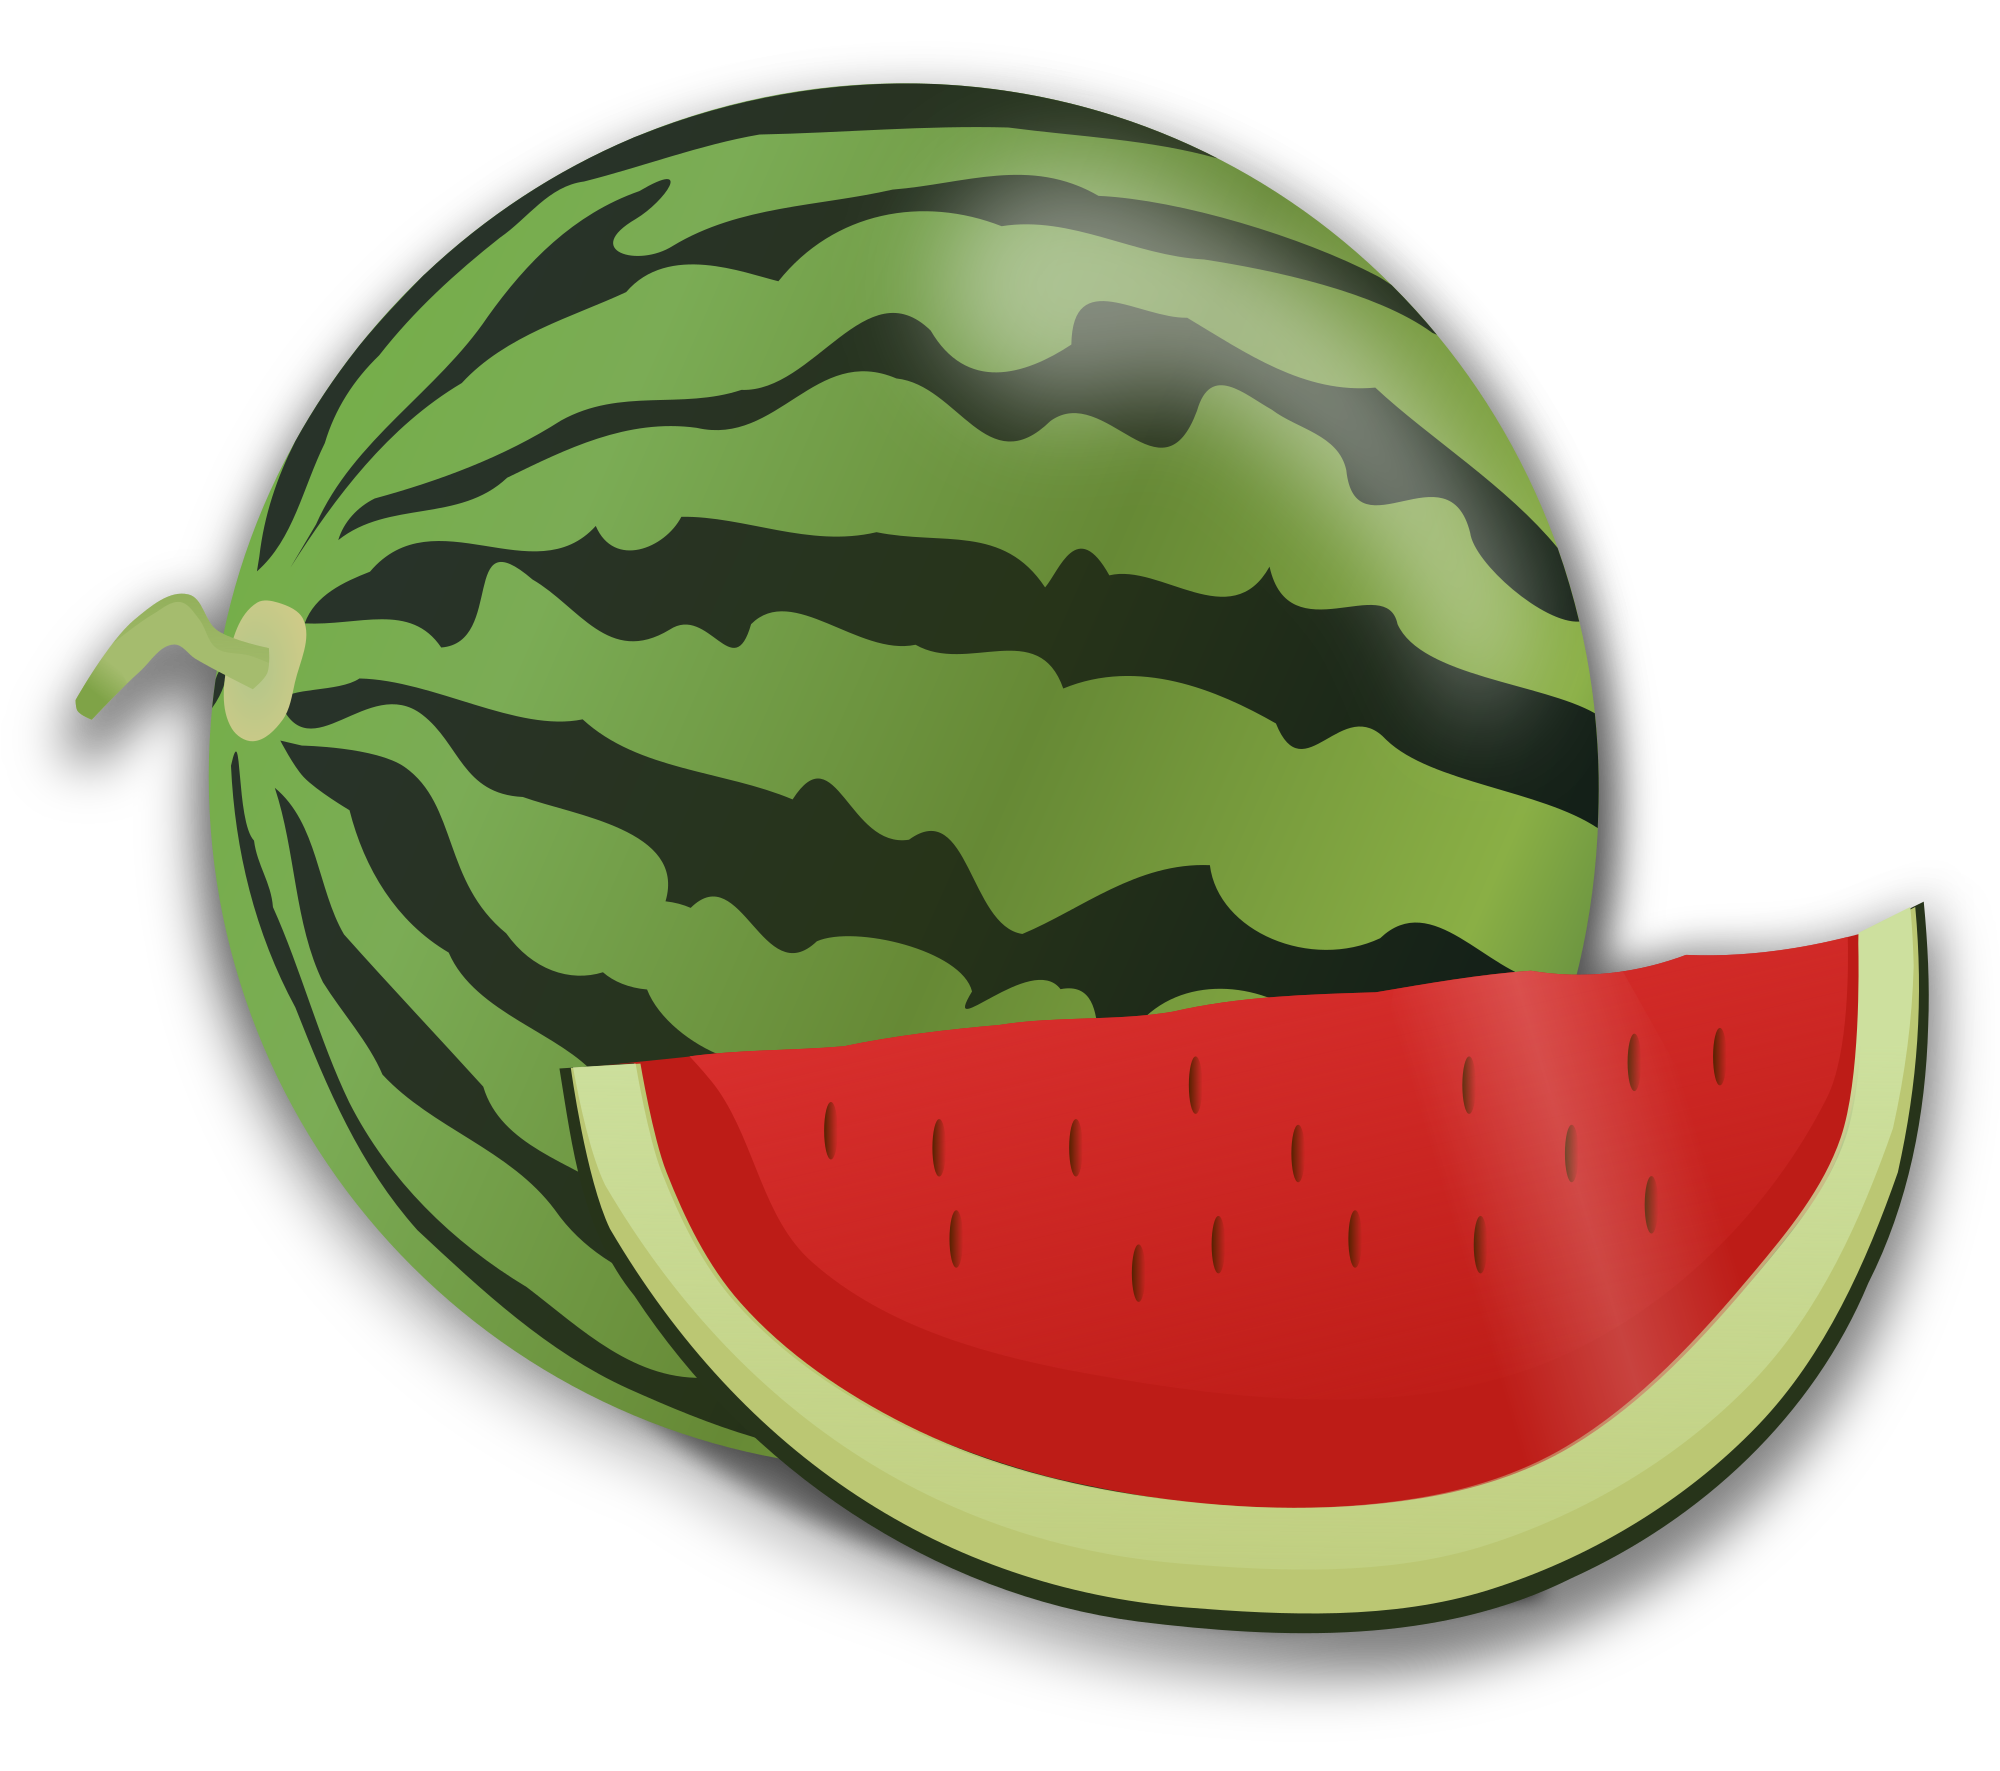 Watermelon clipart svg. File openclipart wikimedia commons